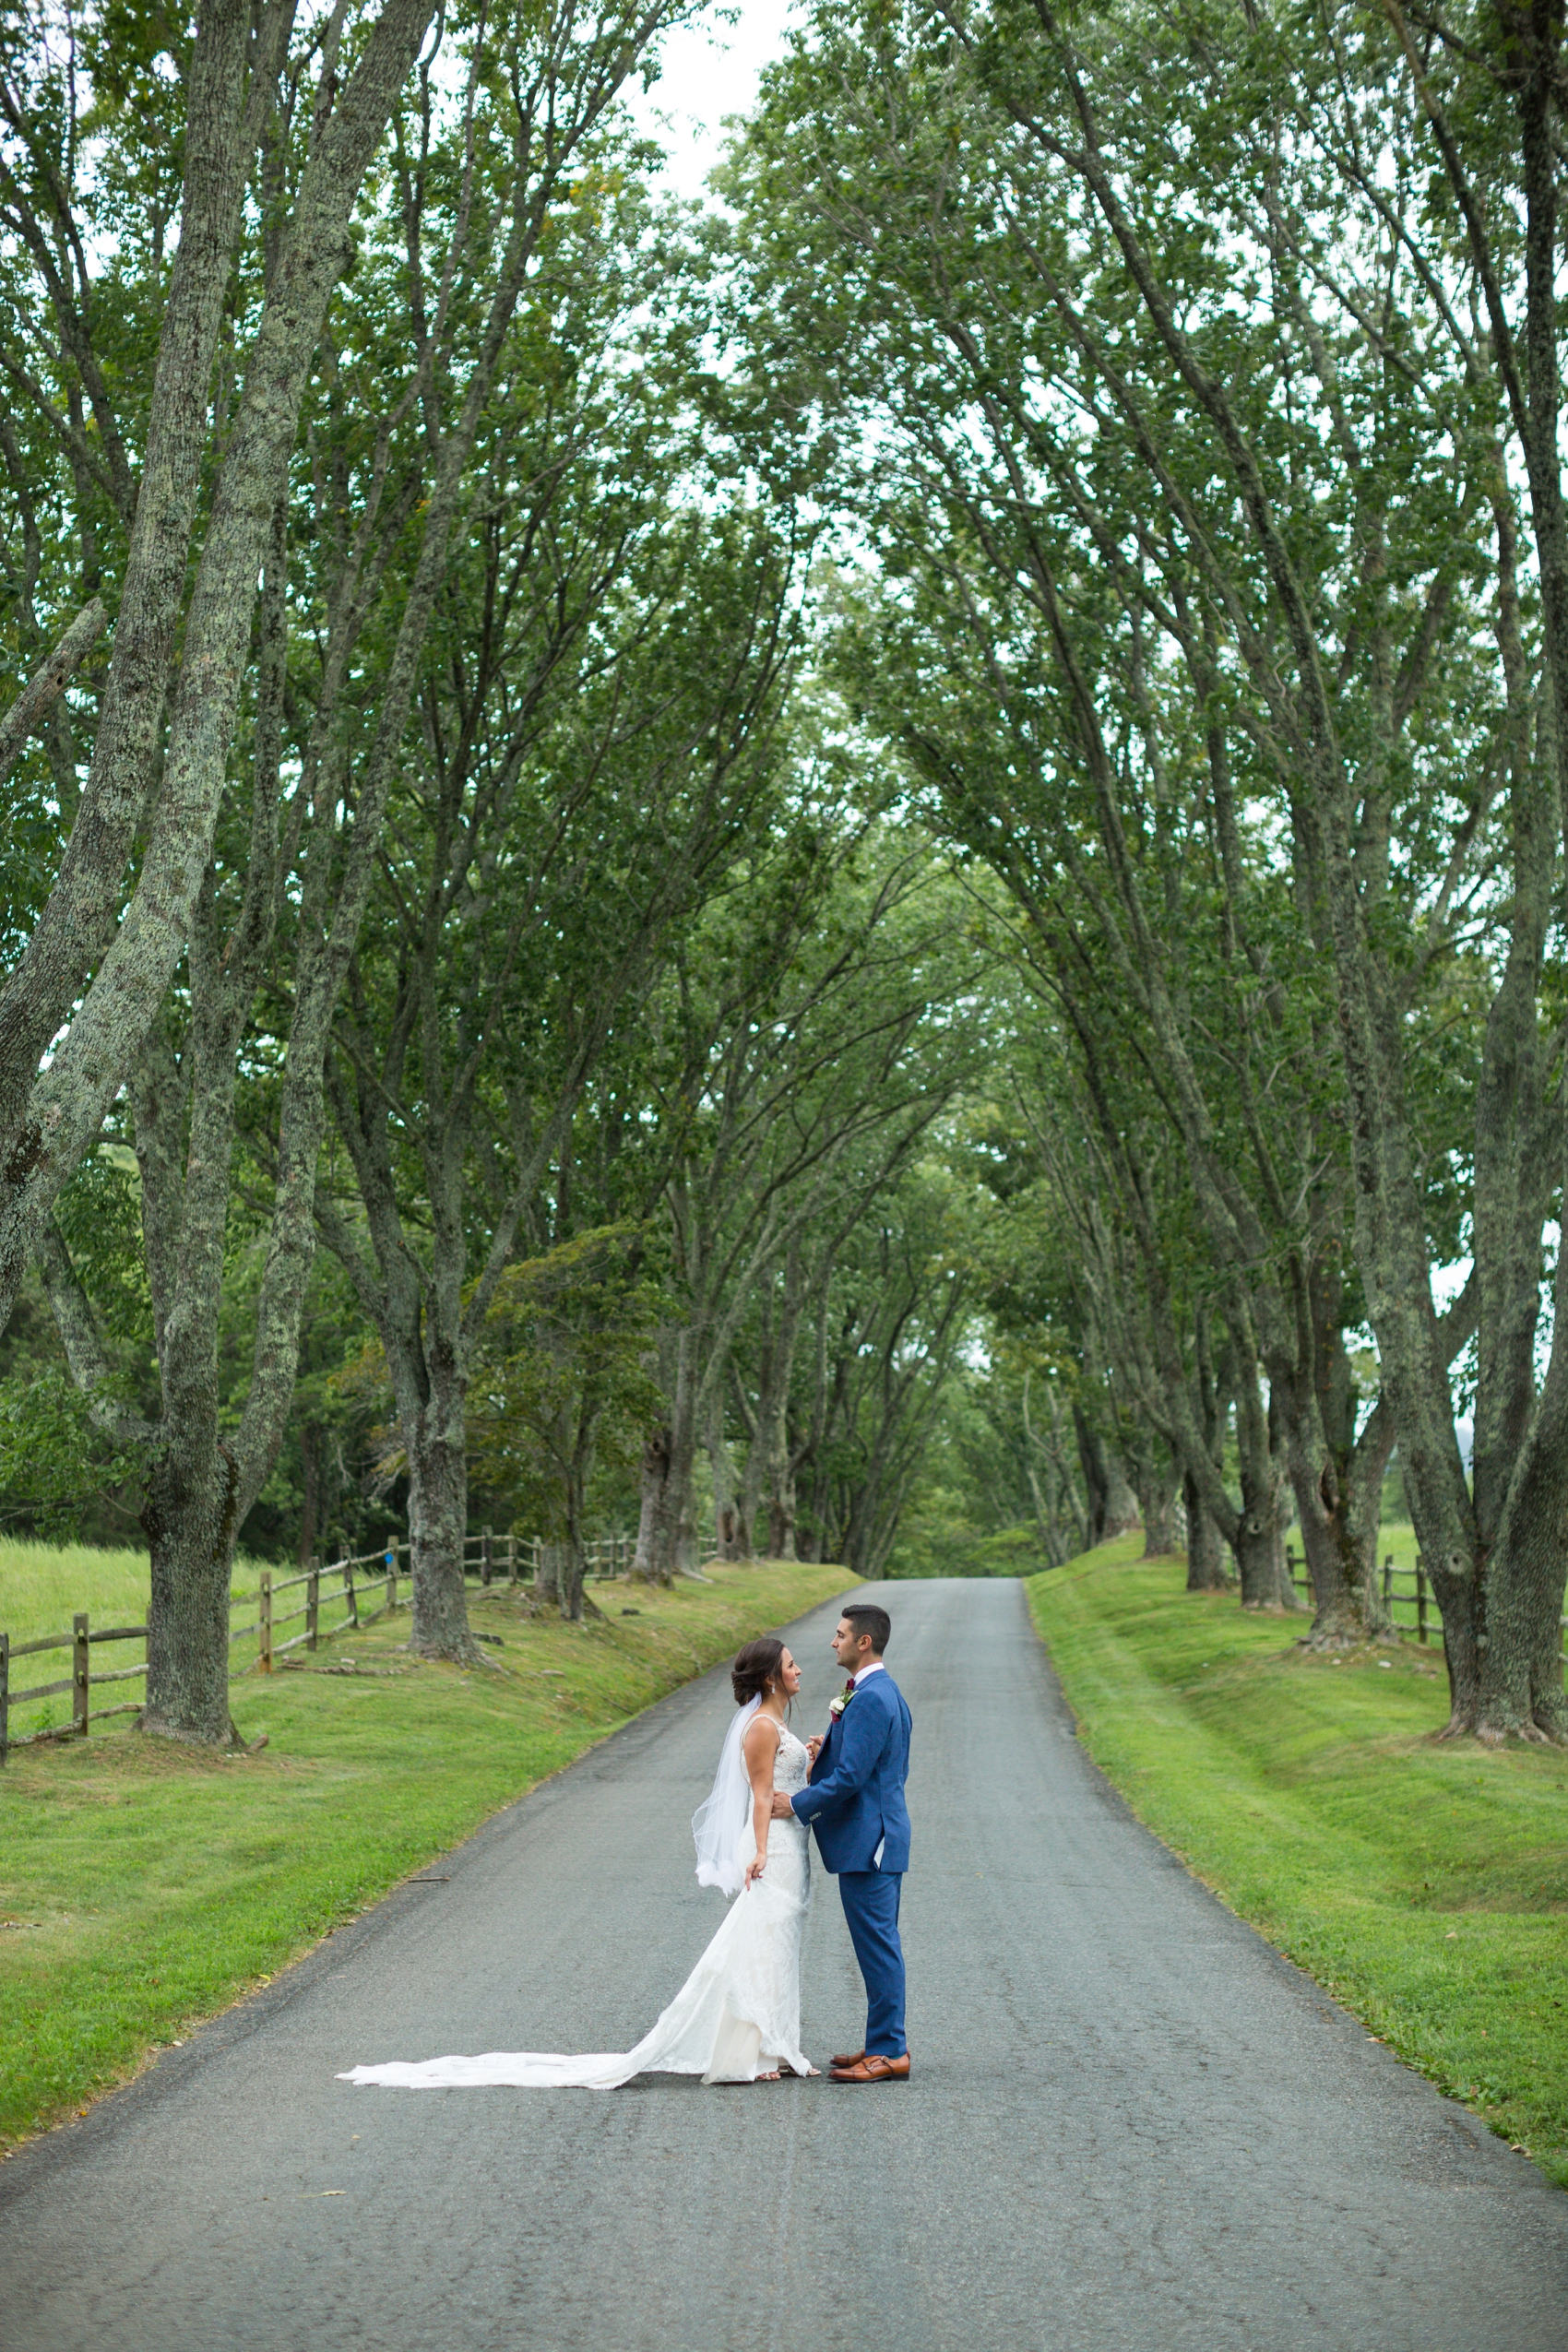 Ashlawn-Highland-Virginia-Wedding-2018-0152.jpg